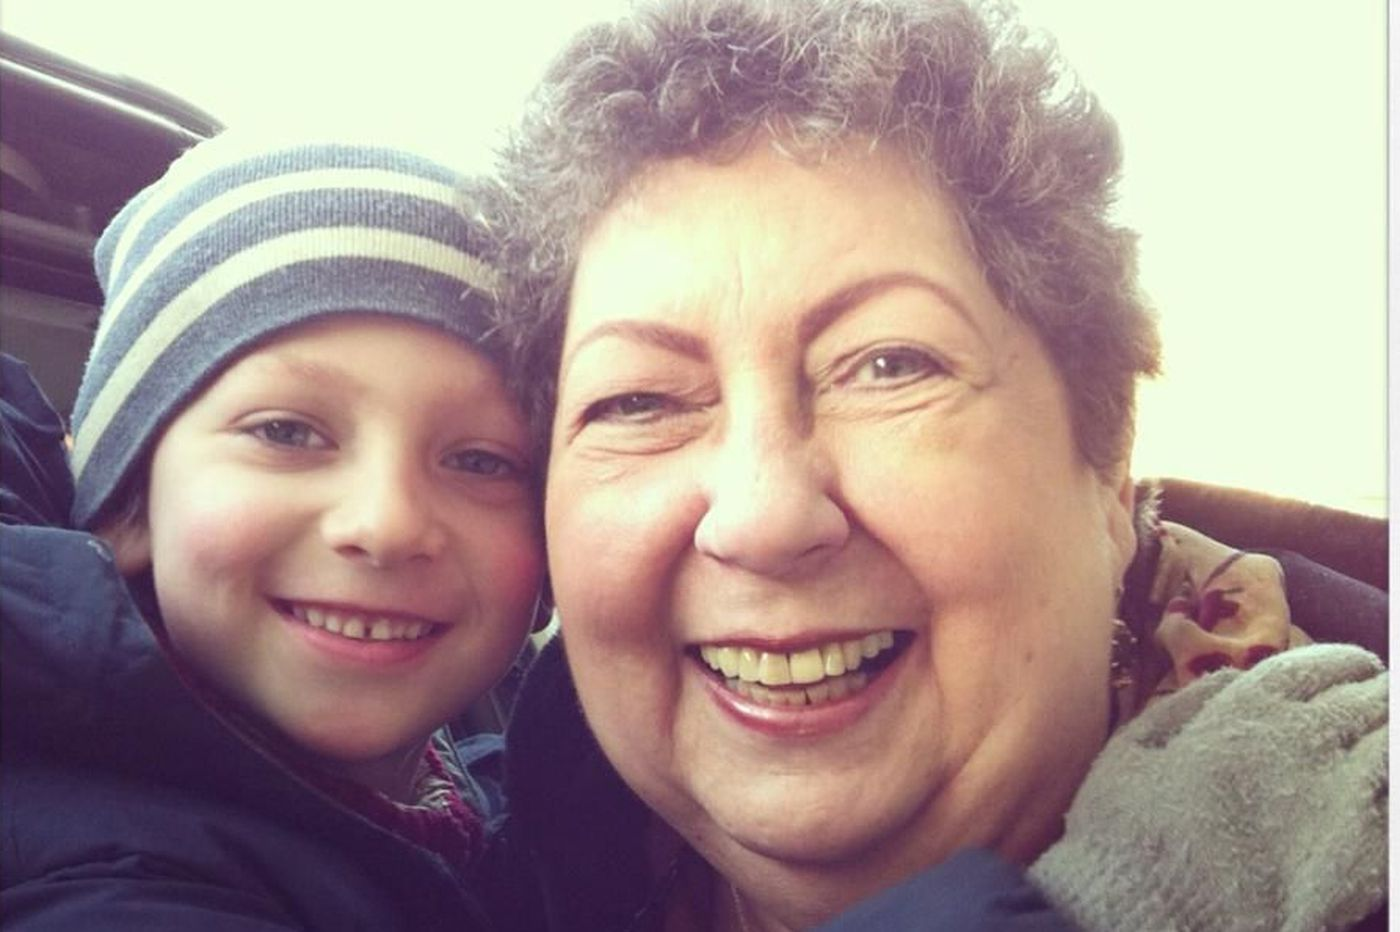 Arlene Horowitz, 78, handled health challenges with grace and humor